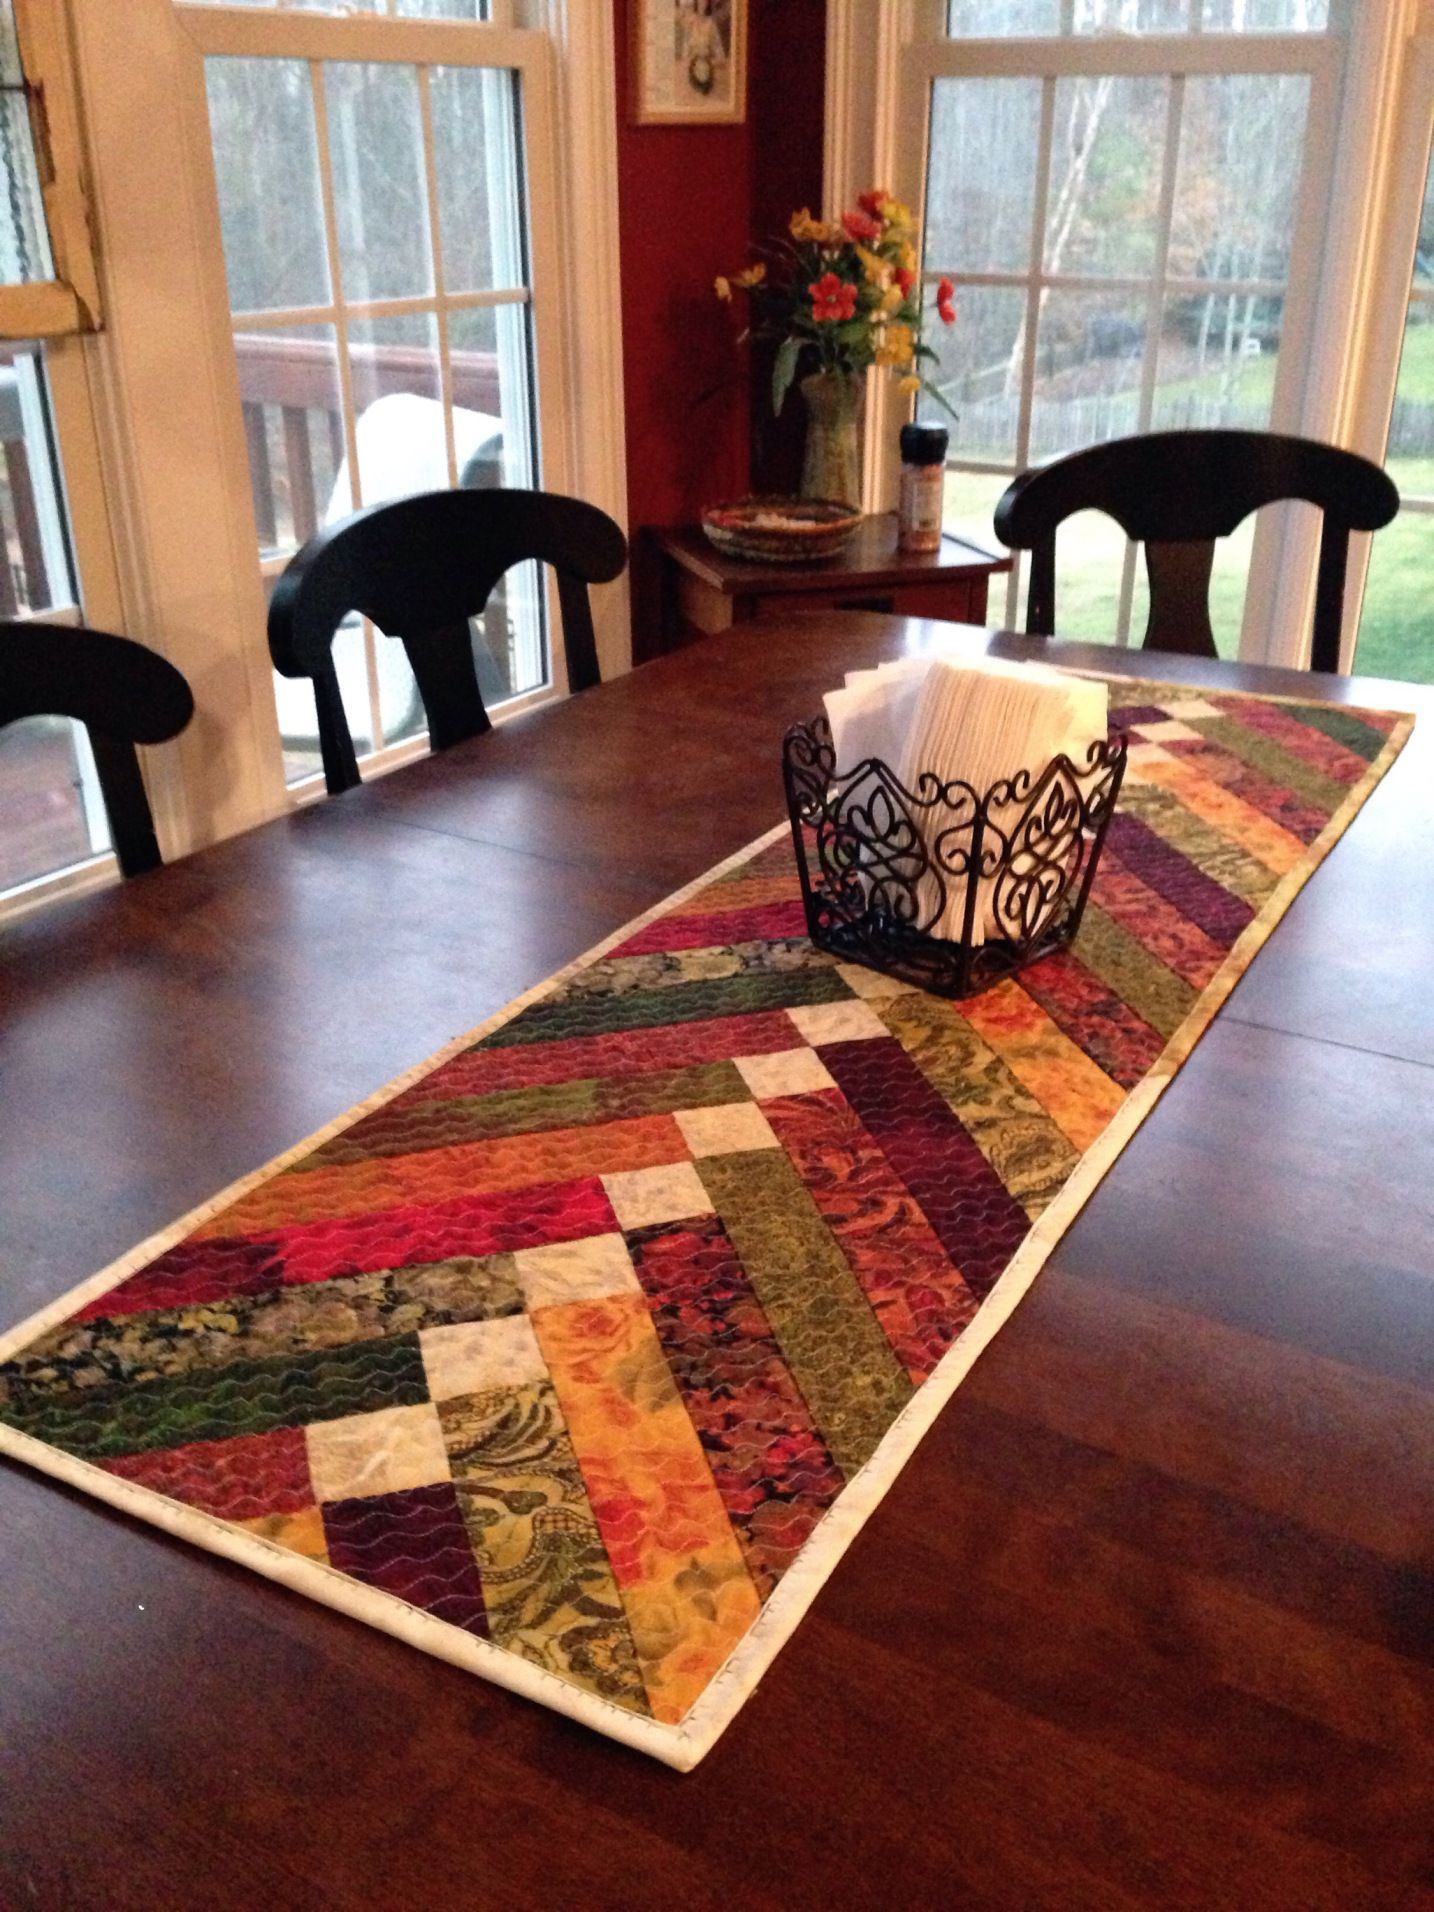 French braid table runner | Patchwork, Quilt tischläufer und Tischset